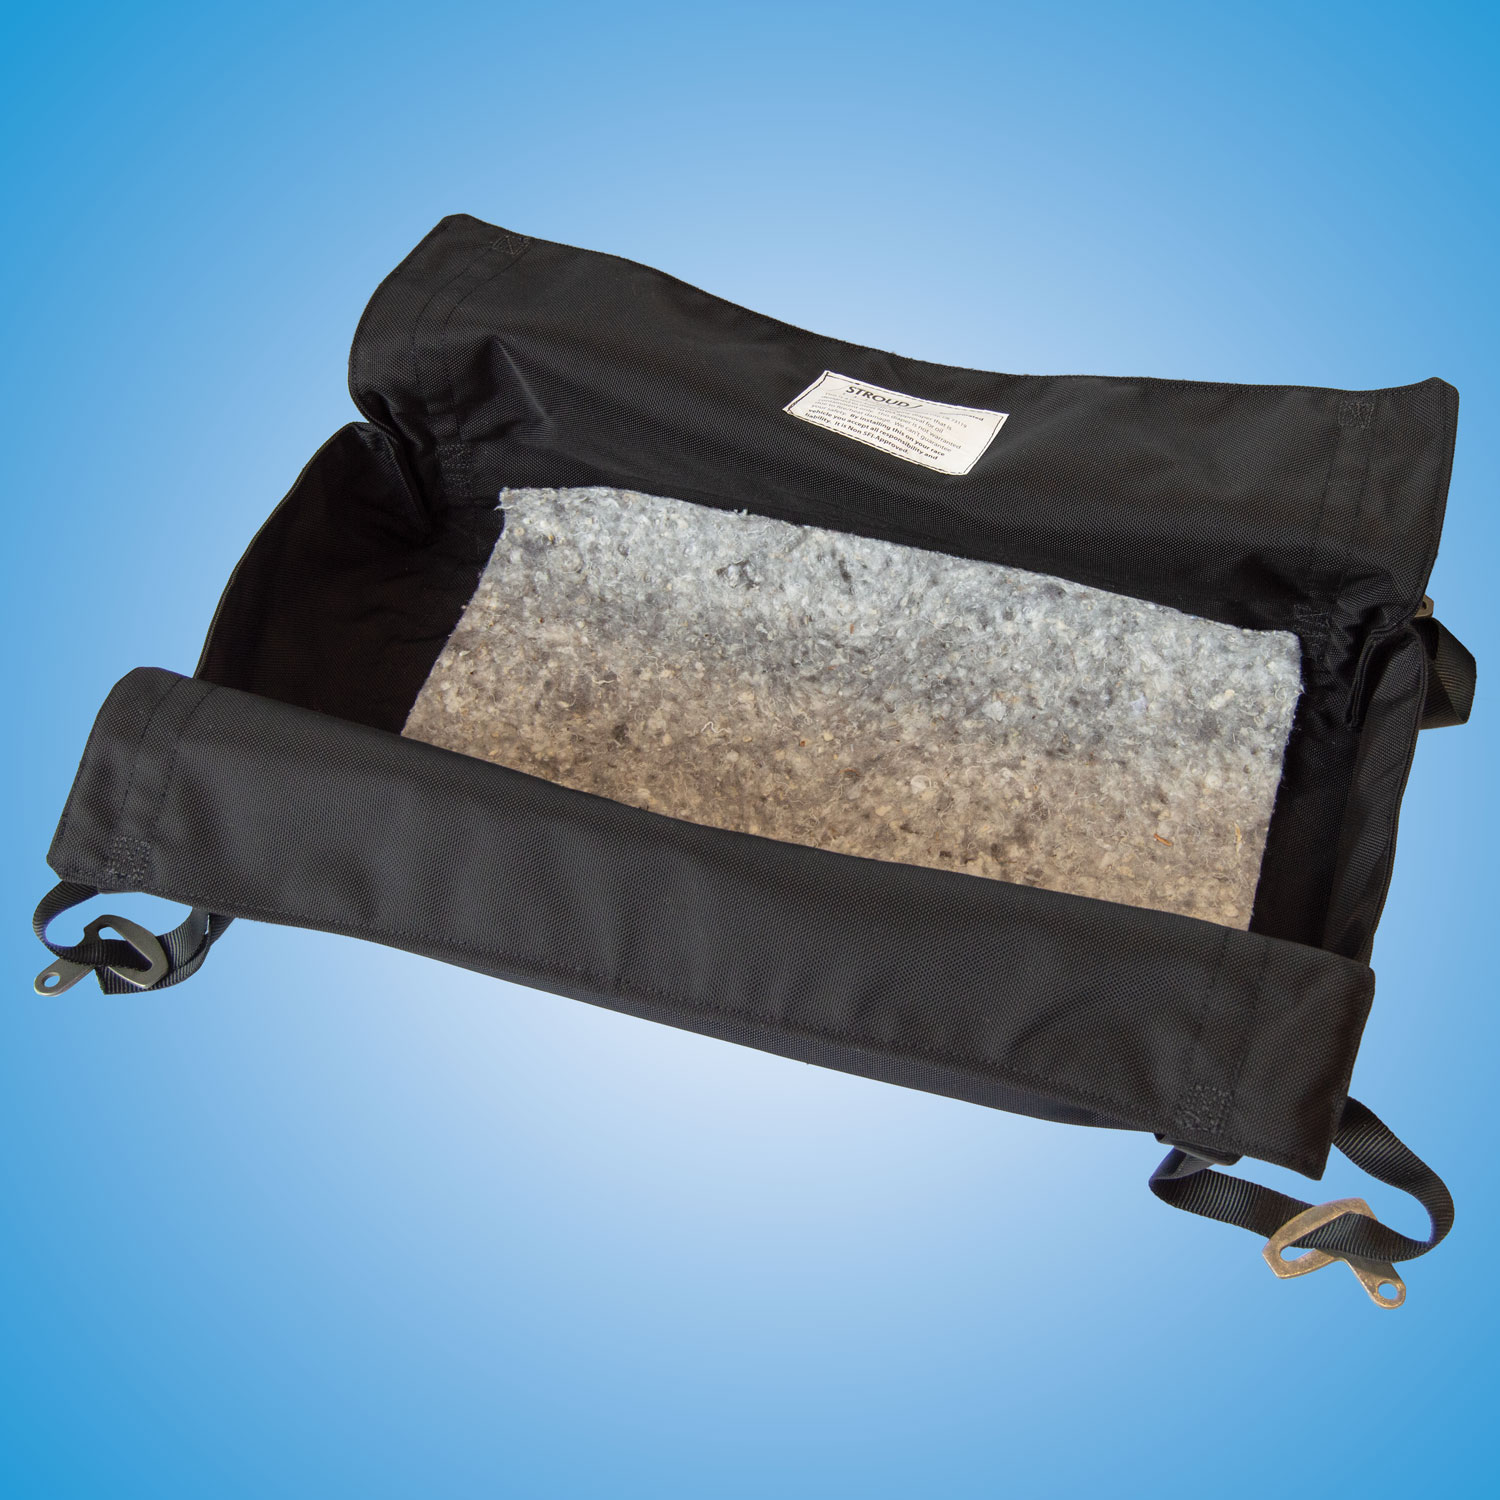 Engine Diaper Non-SFI Sportsman   Shares same materials and quality of our sportsman diaper, but value priced.   Non-SFI Engine Diaper - Complete  Part #1030 – $109.99